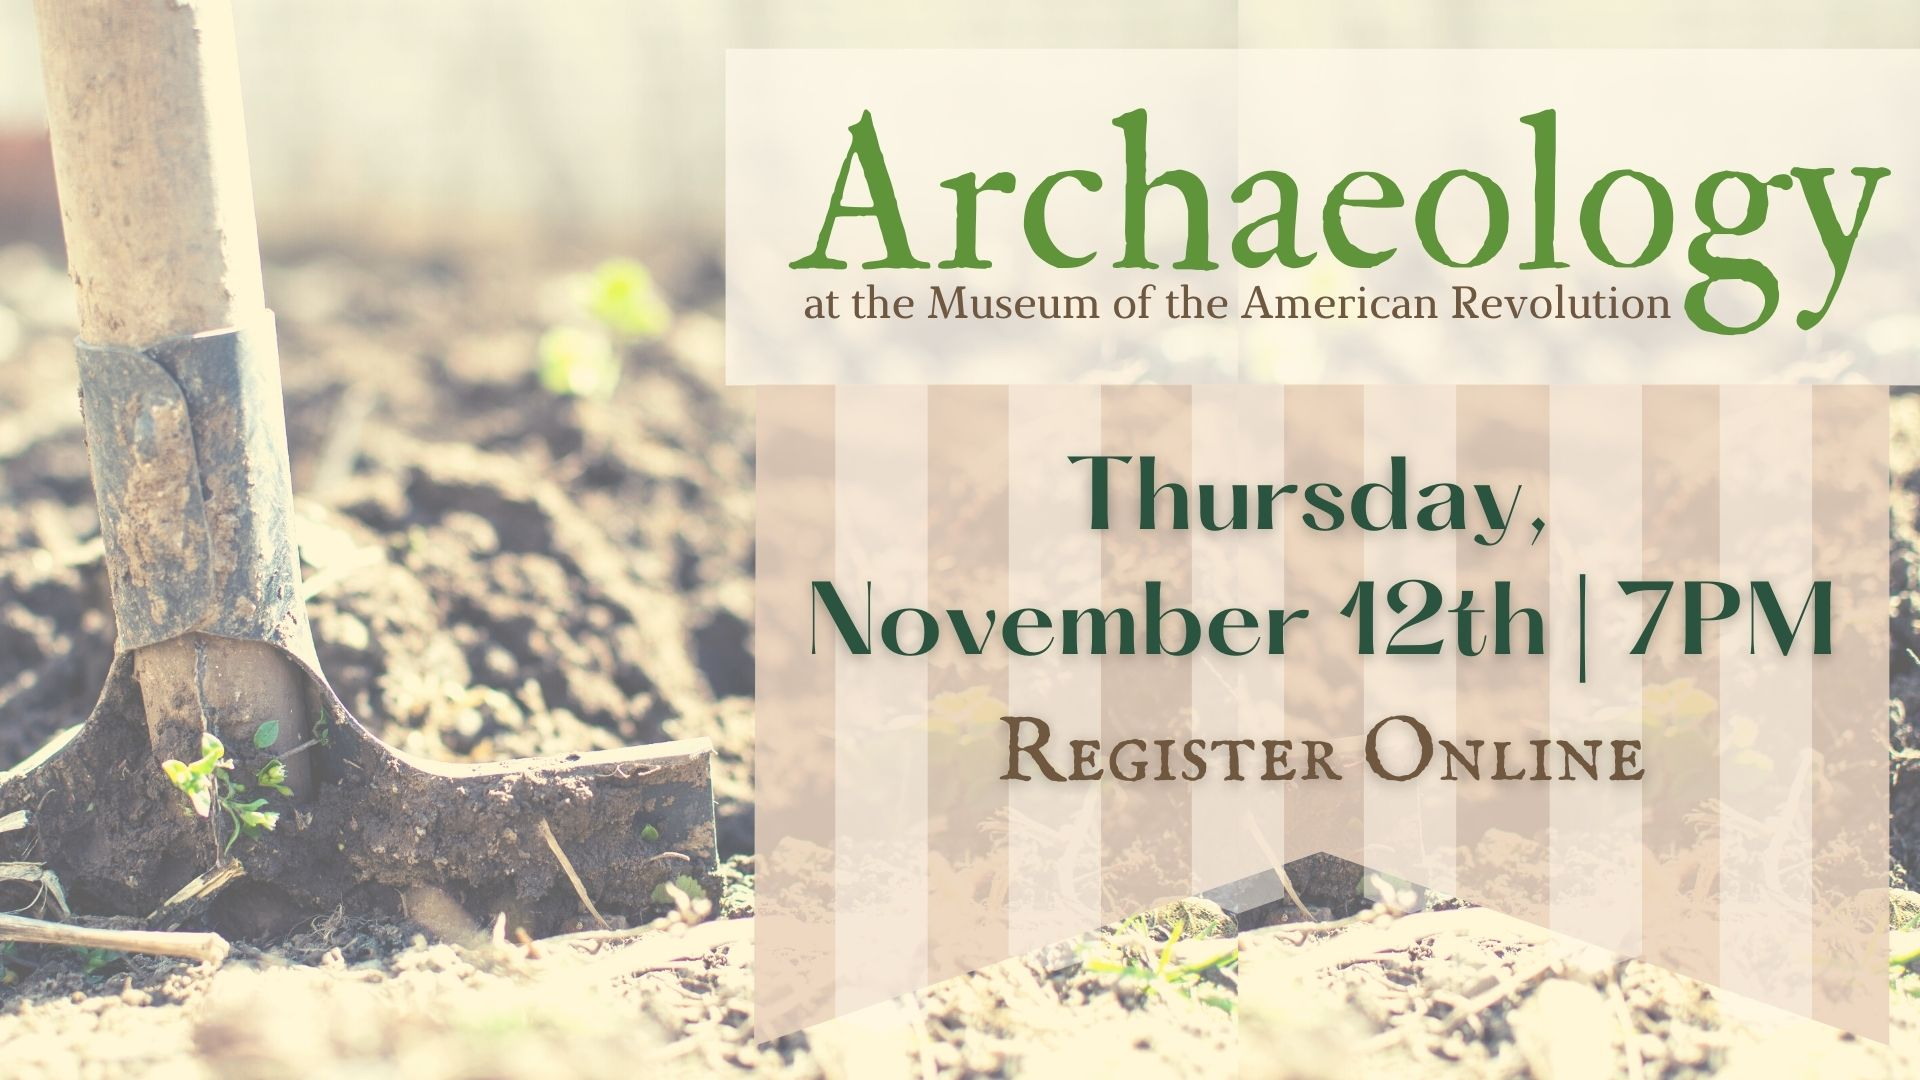 Archaeology at the Museum of the American Revolution